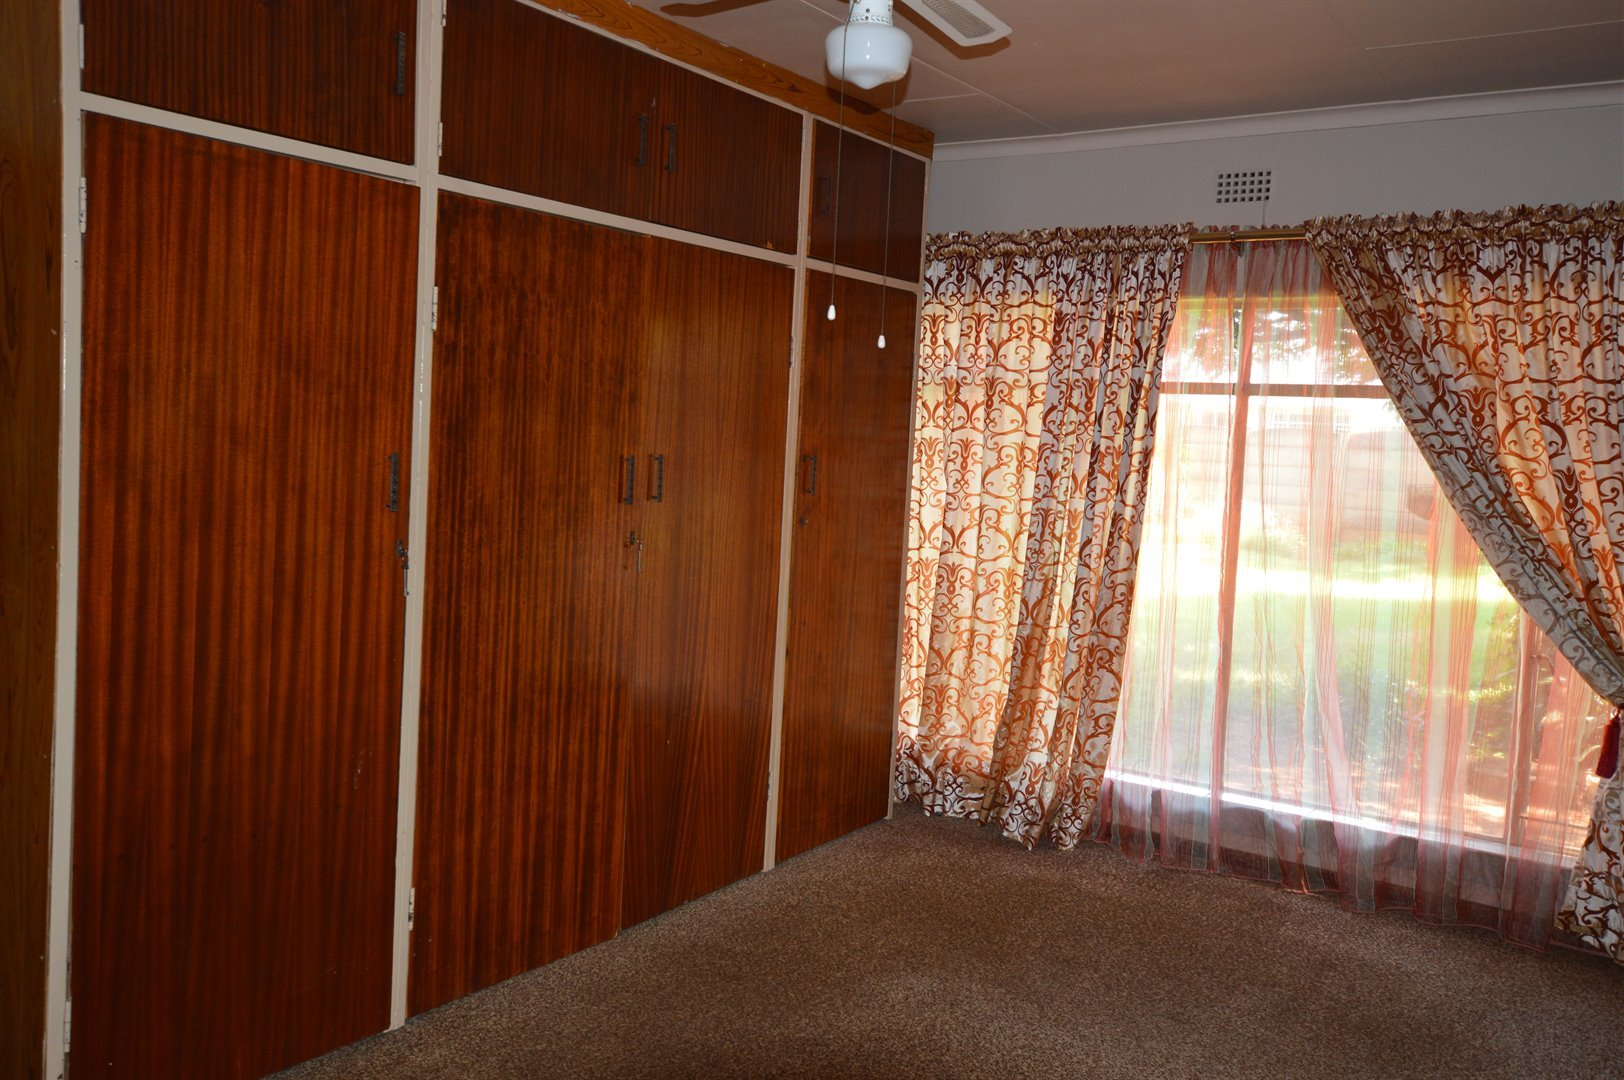 Vanderbijlpark Se 2 property for sale. Ref No: 13623209. Picture no 13